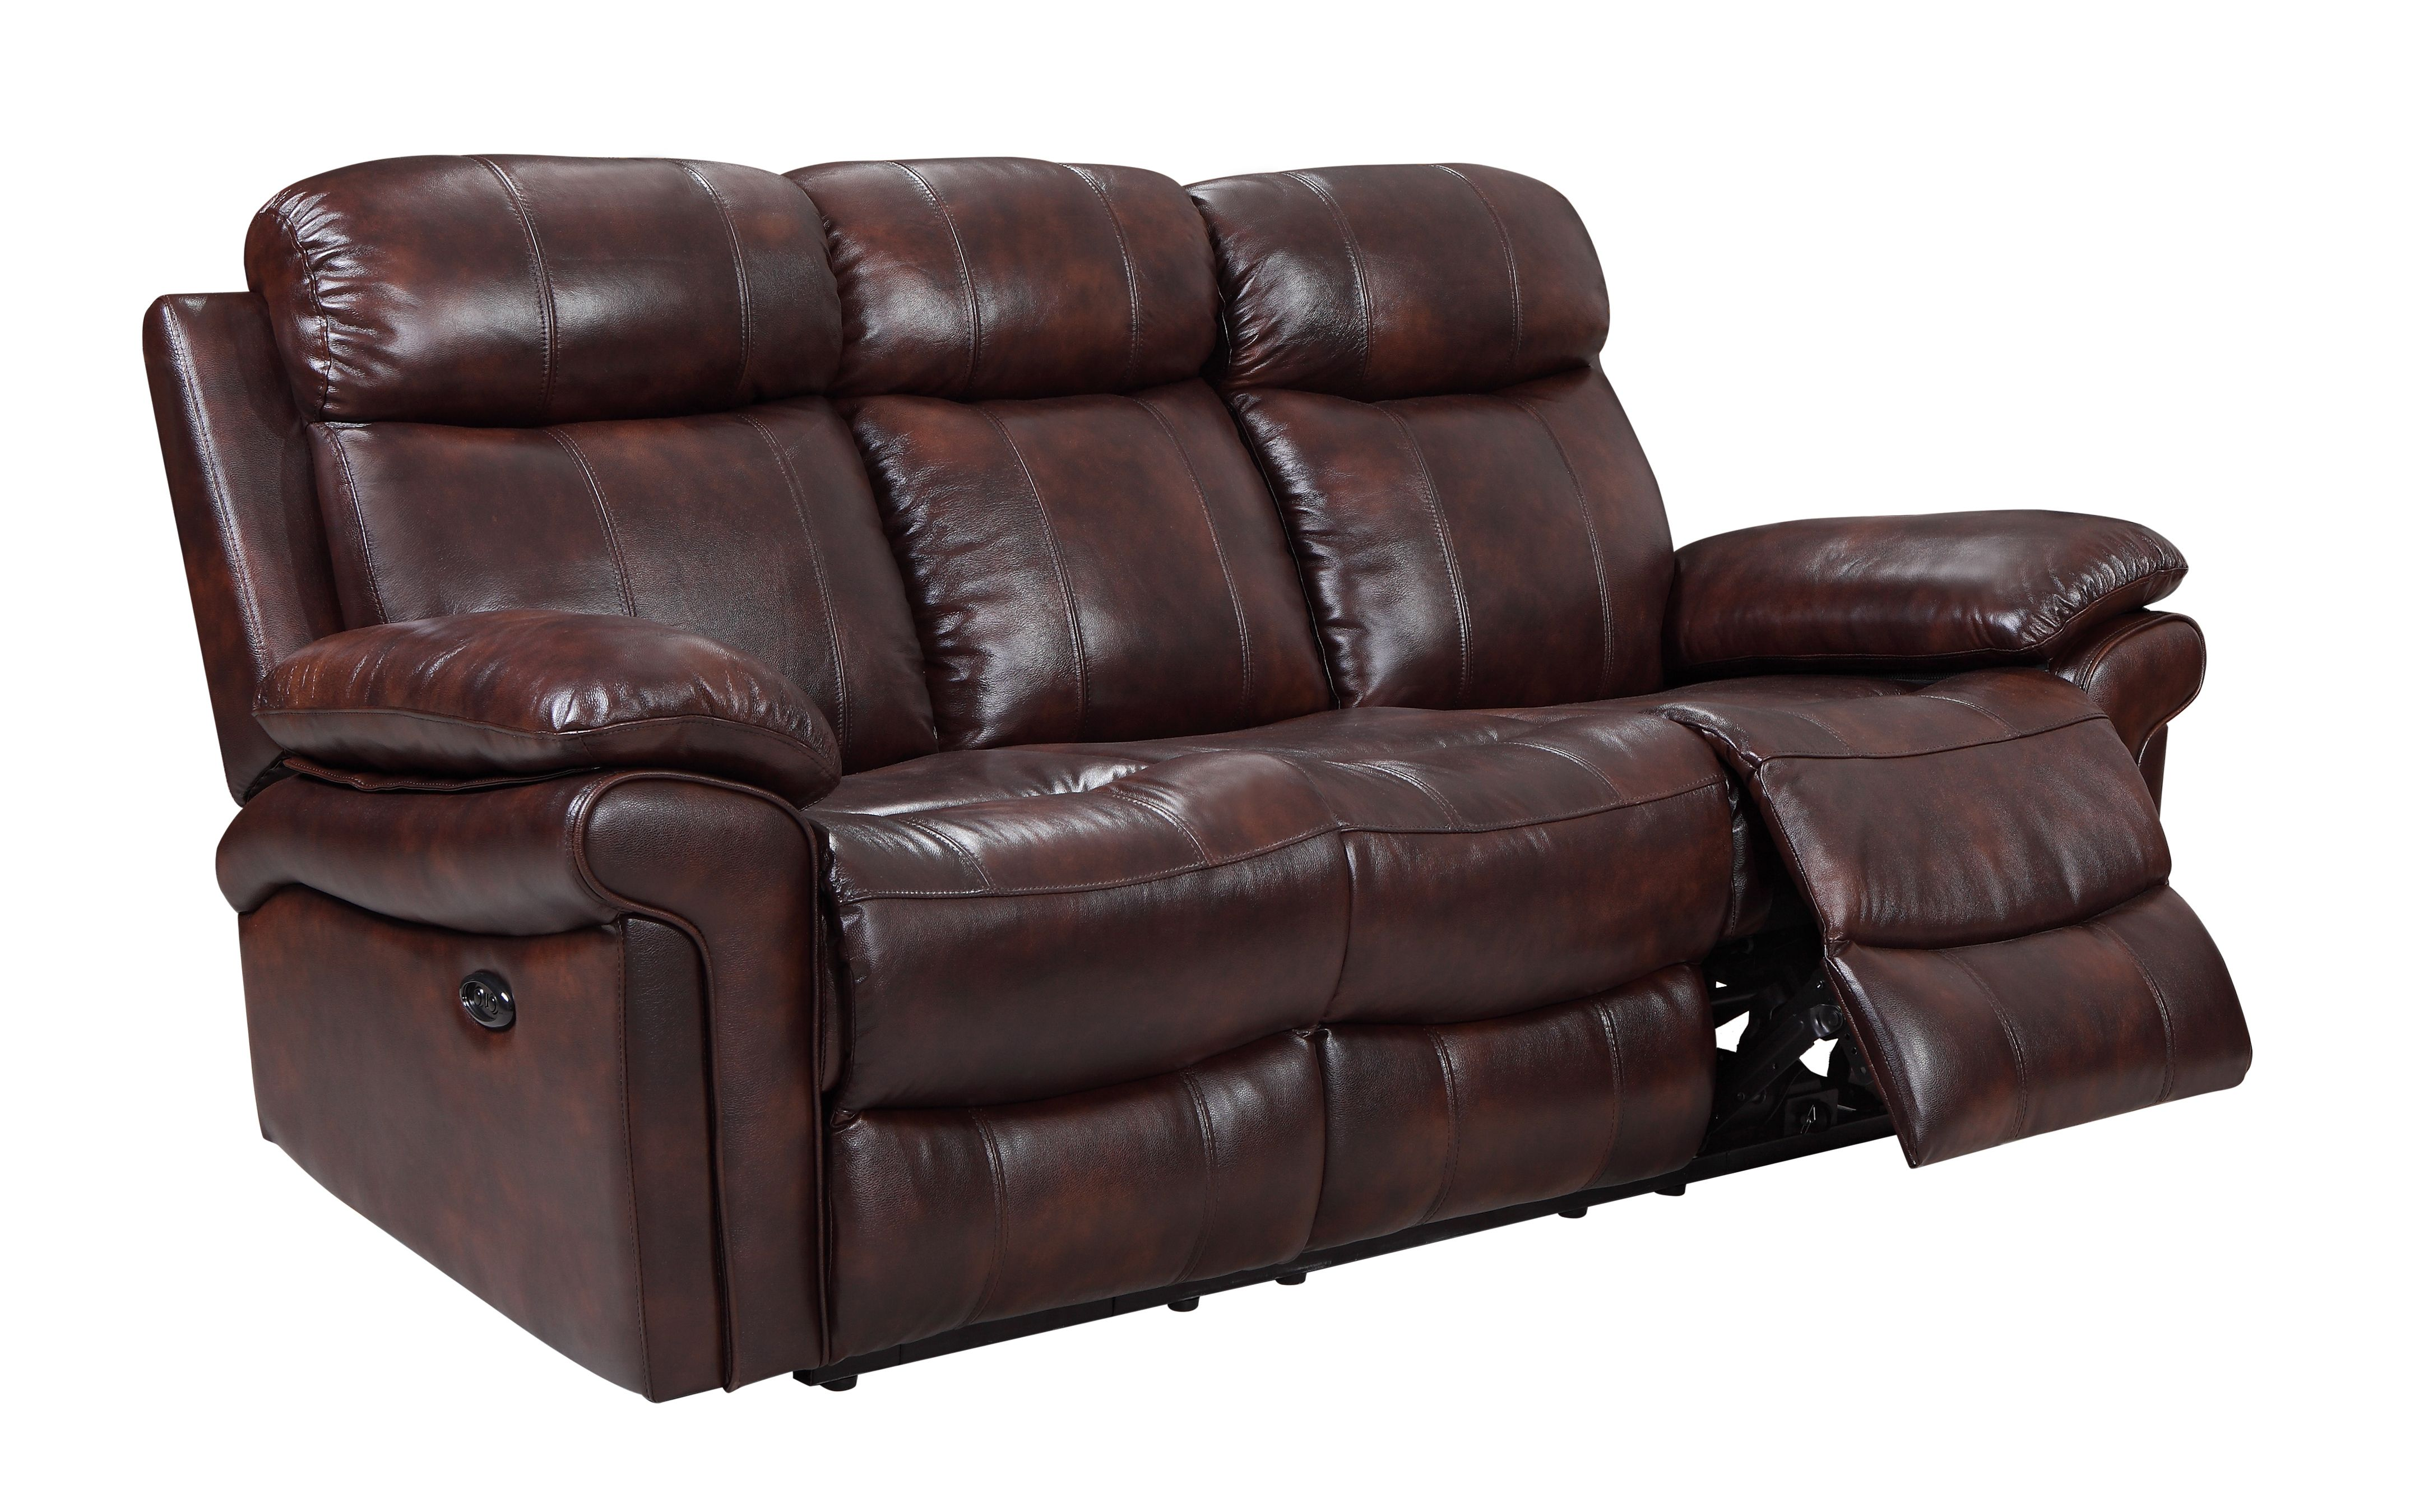 Superior Hudson Power Reclining Top Grain Leather Sofa